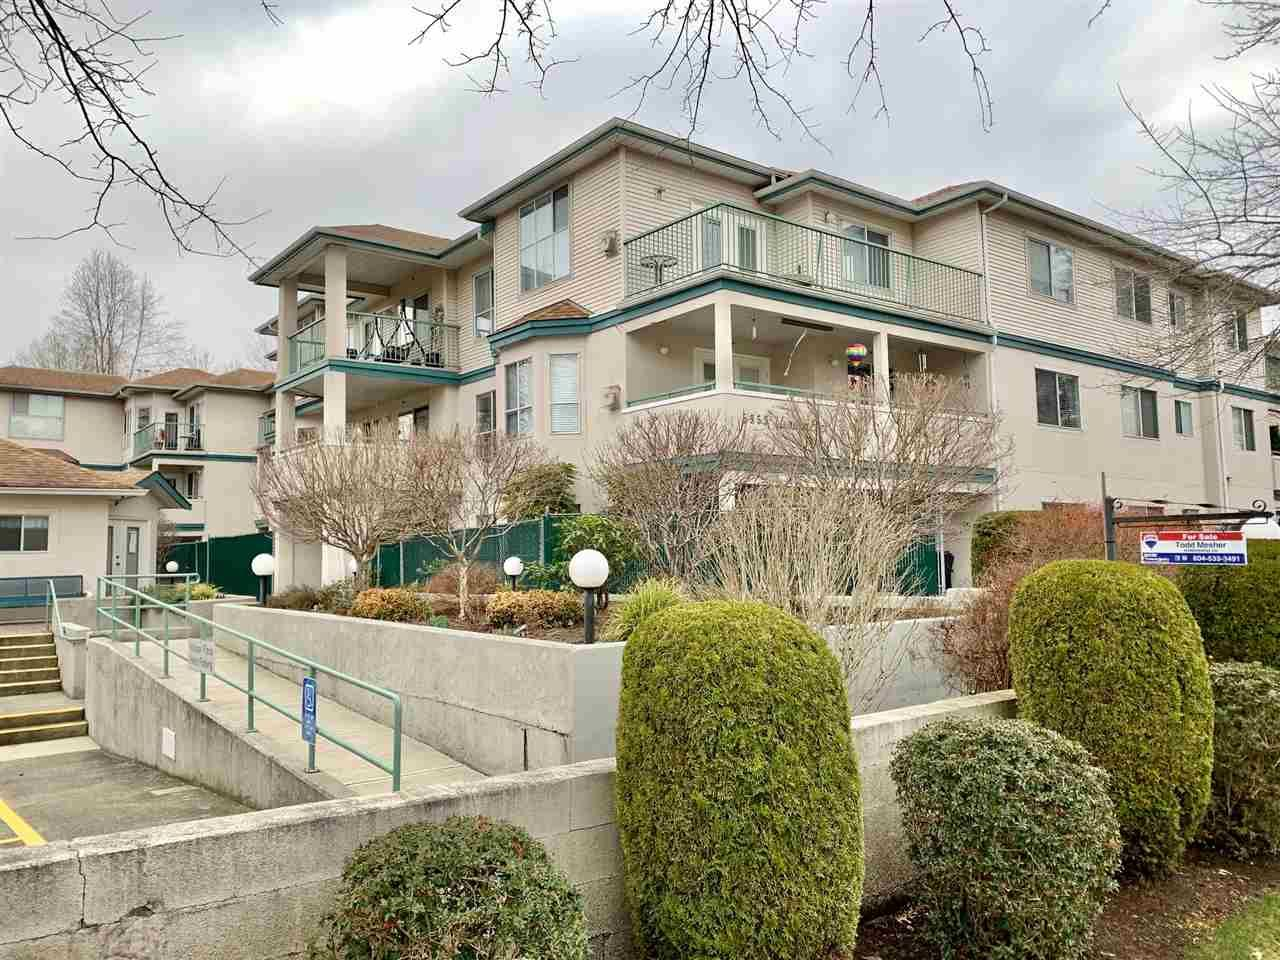 """Main Photo: 208 5955 177B Street in Surrey: Cloverdale BC Condo for sale in """"Windsor Place"""" (Cloverdale)  : MLS®# R2538115"""